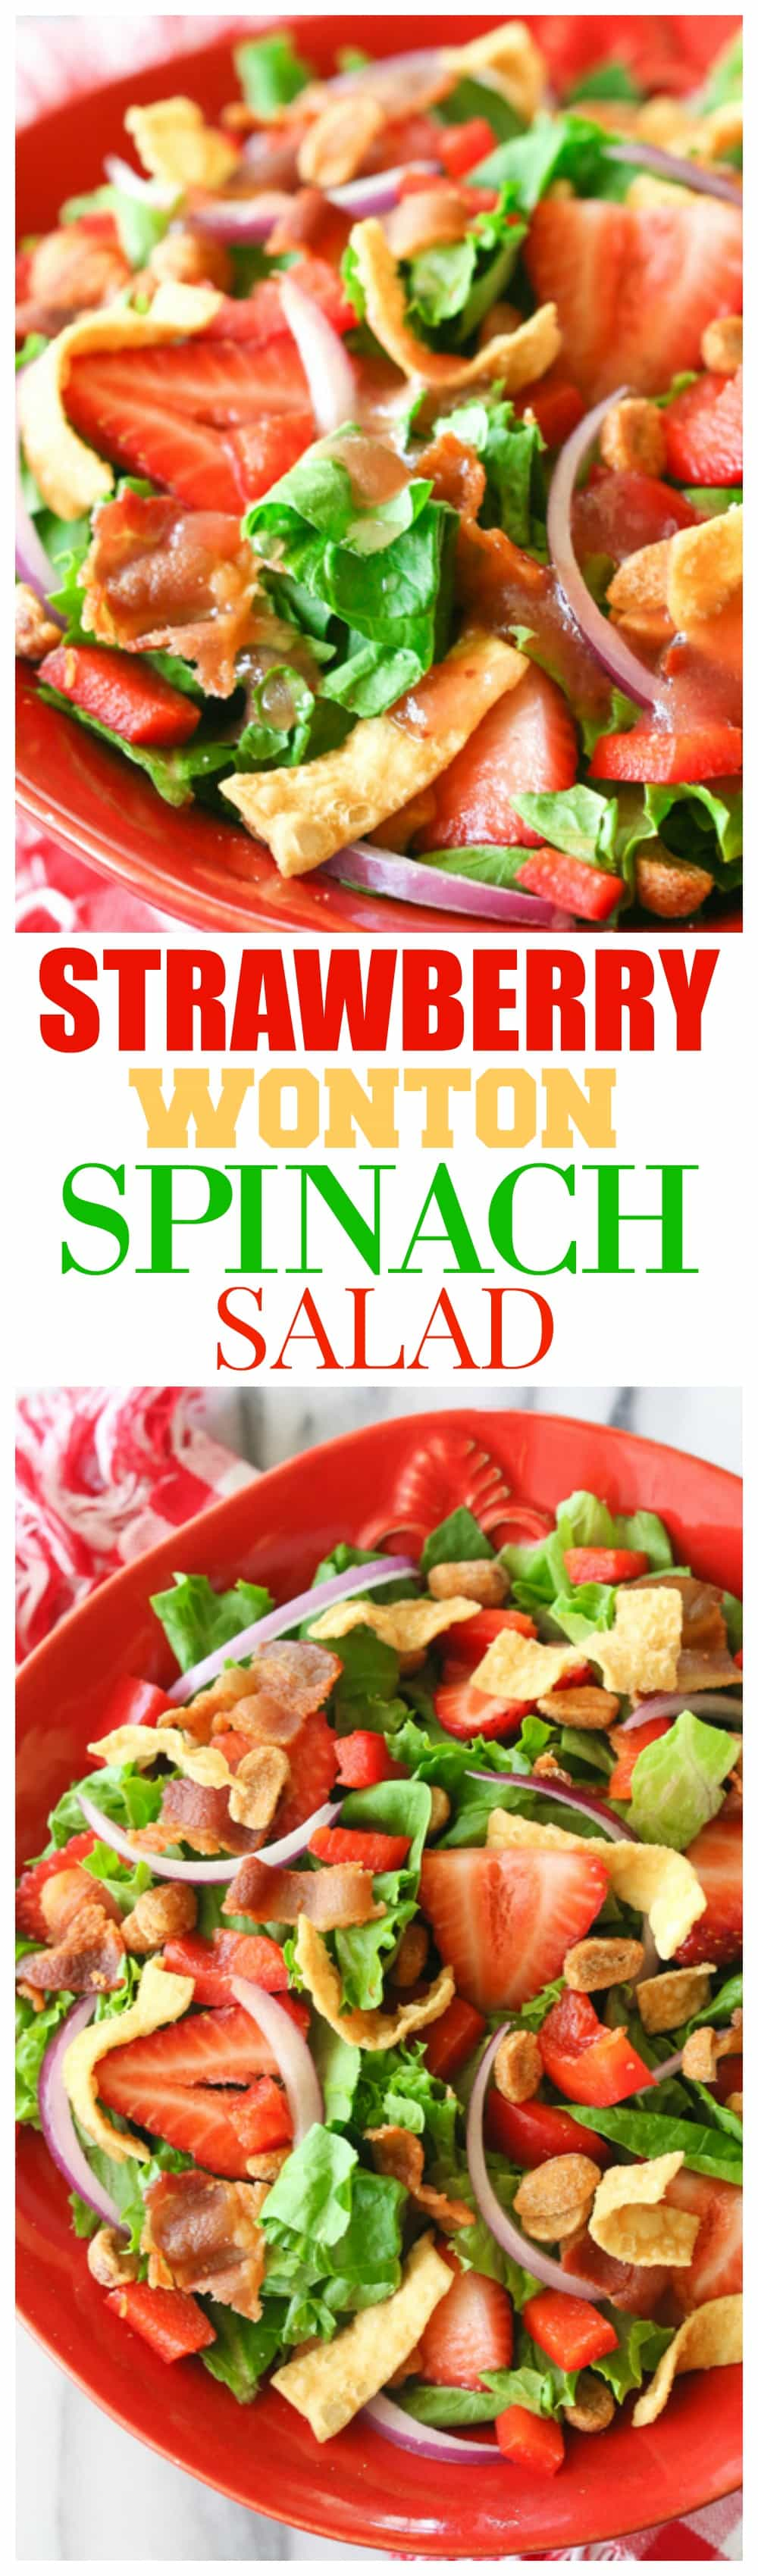 This Strawberry Wonton Spinach Salad is filled with red bell peppers, onions, honey roasted peanuts, bacon, and crunchy wontons. I love taking this Strawberry Wonton Salad to potlucks or BBQs. It's always a hit! #strawberry #salad #summer #potluck